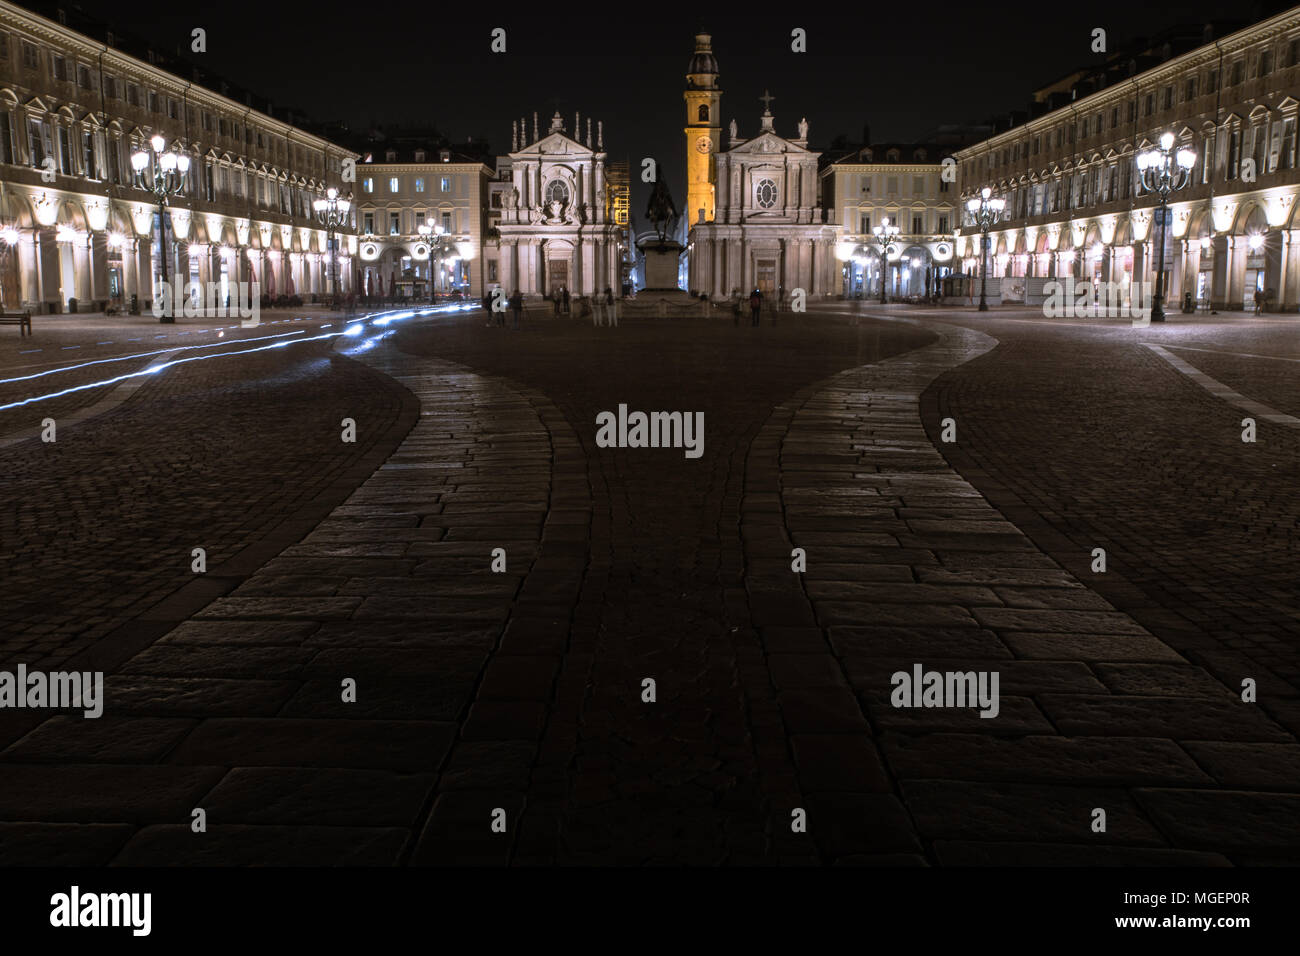 One of the main squares of Turin, Piazza San Carlo, photographed at night while the headlights of the bikes whiz past the historical monuments Stock Photo